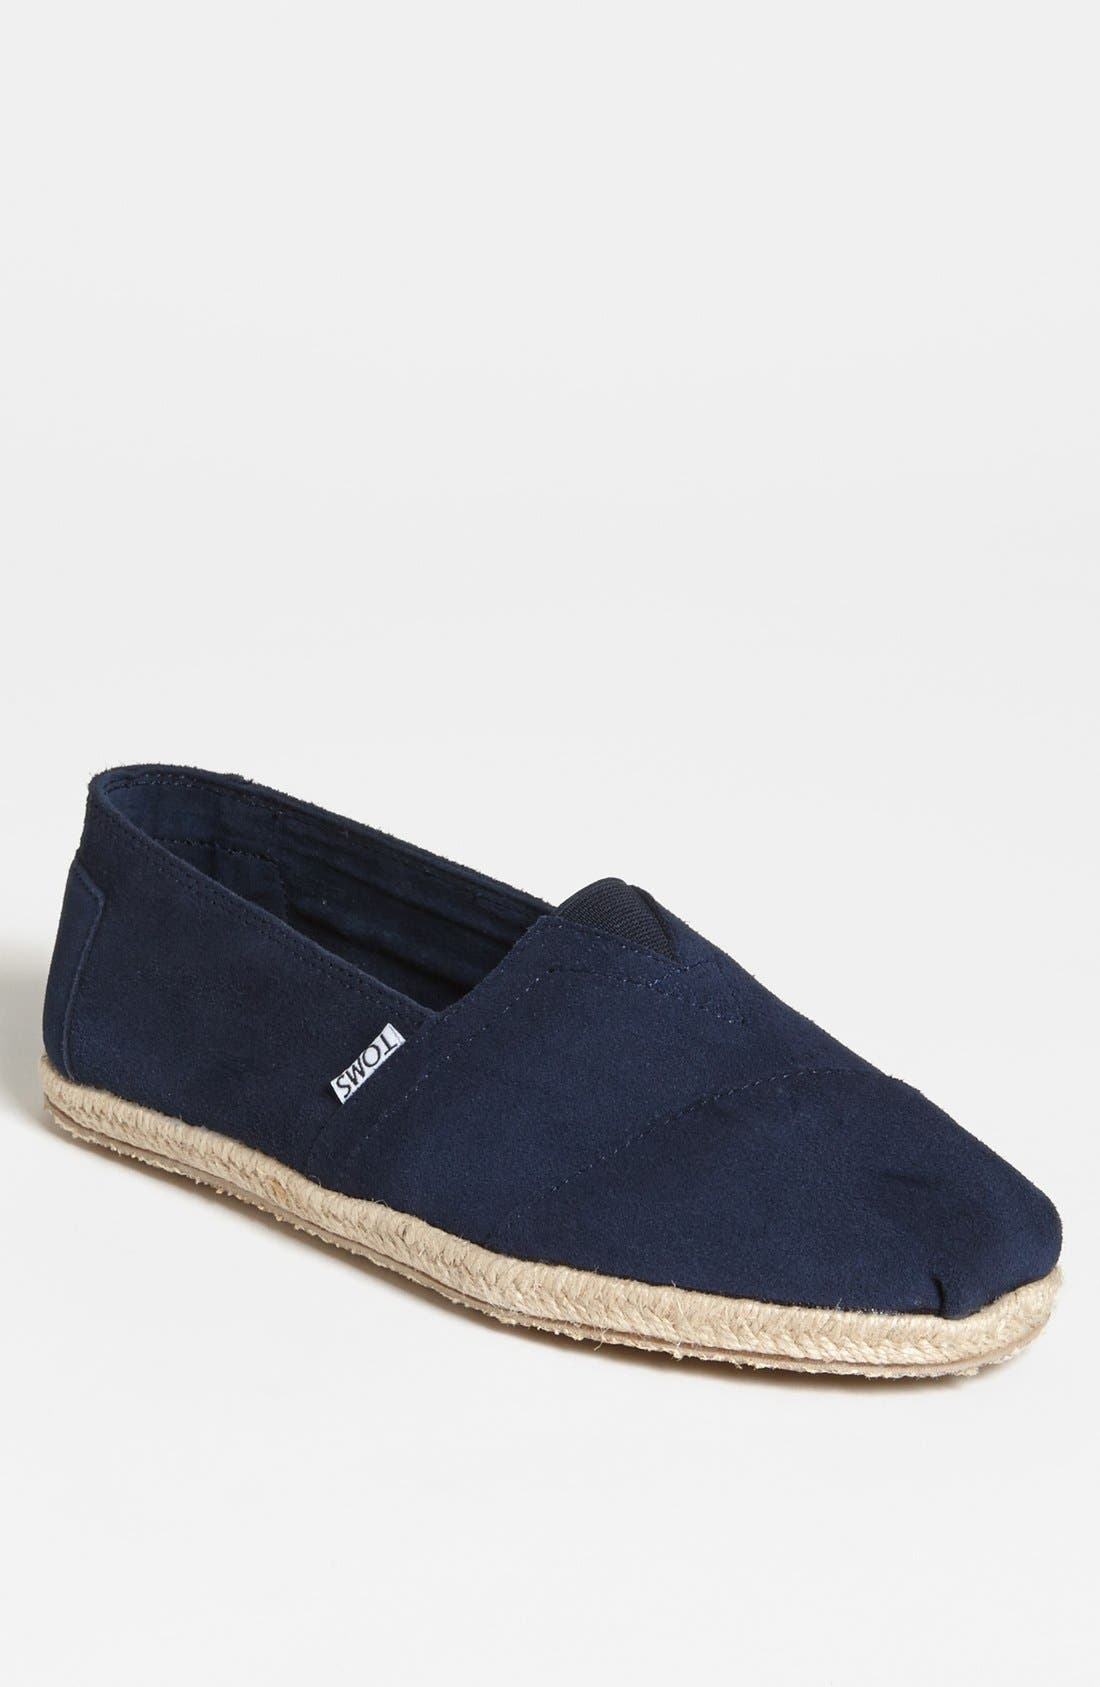 Alternate Image 1 Selected - TOMS 'Classic' Suede Slip-On   (Men)